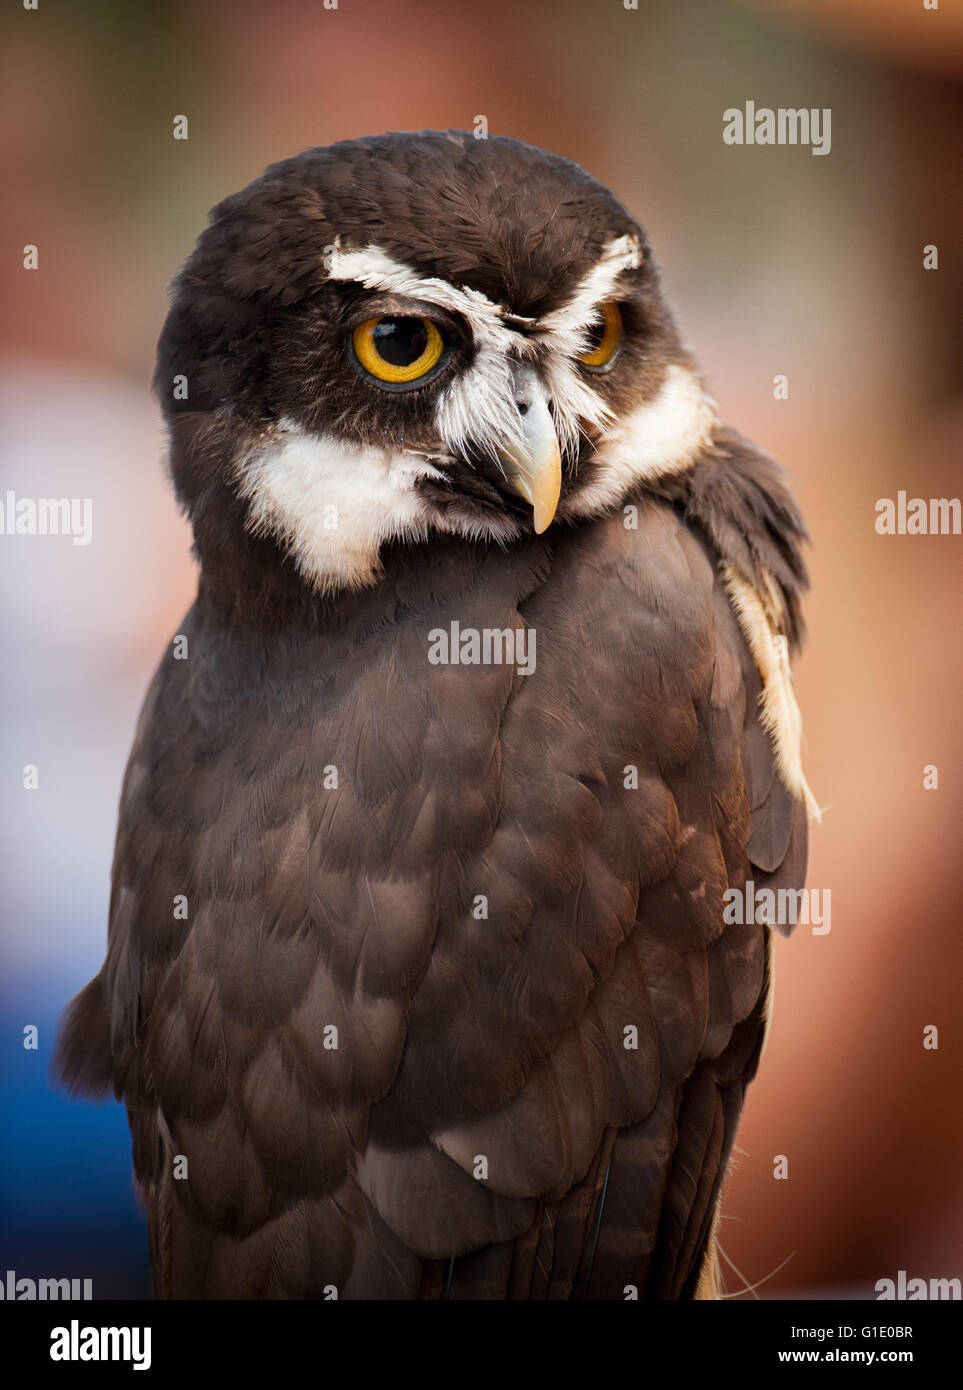 Beautiful Spectacle owl - Stock Image